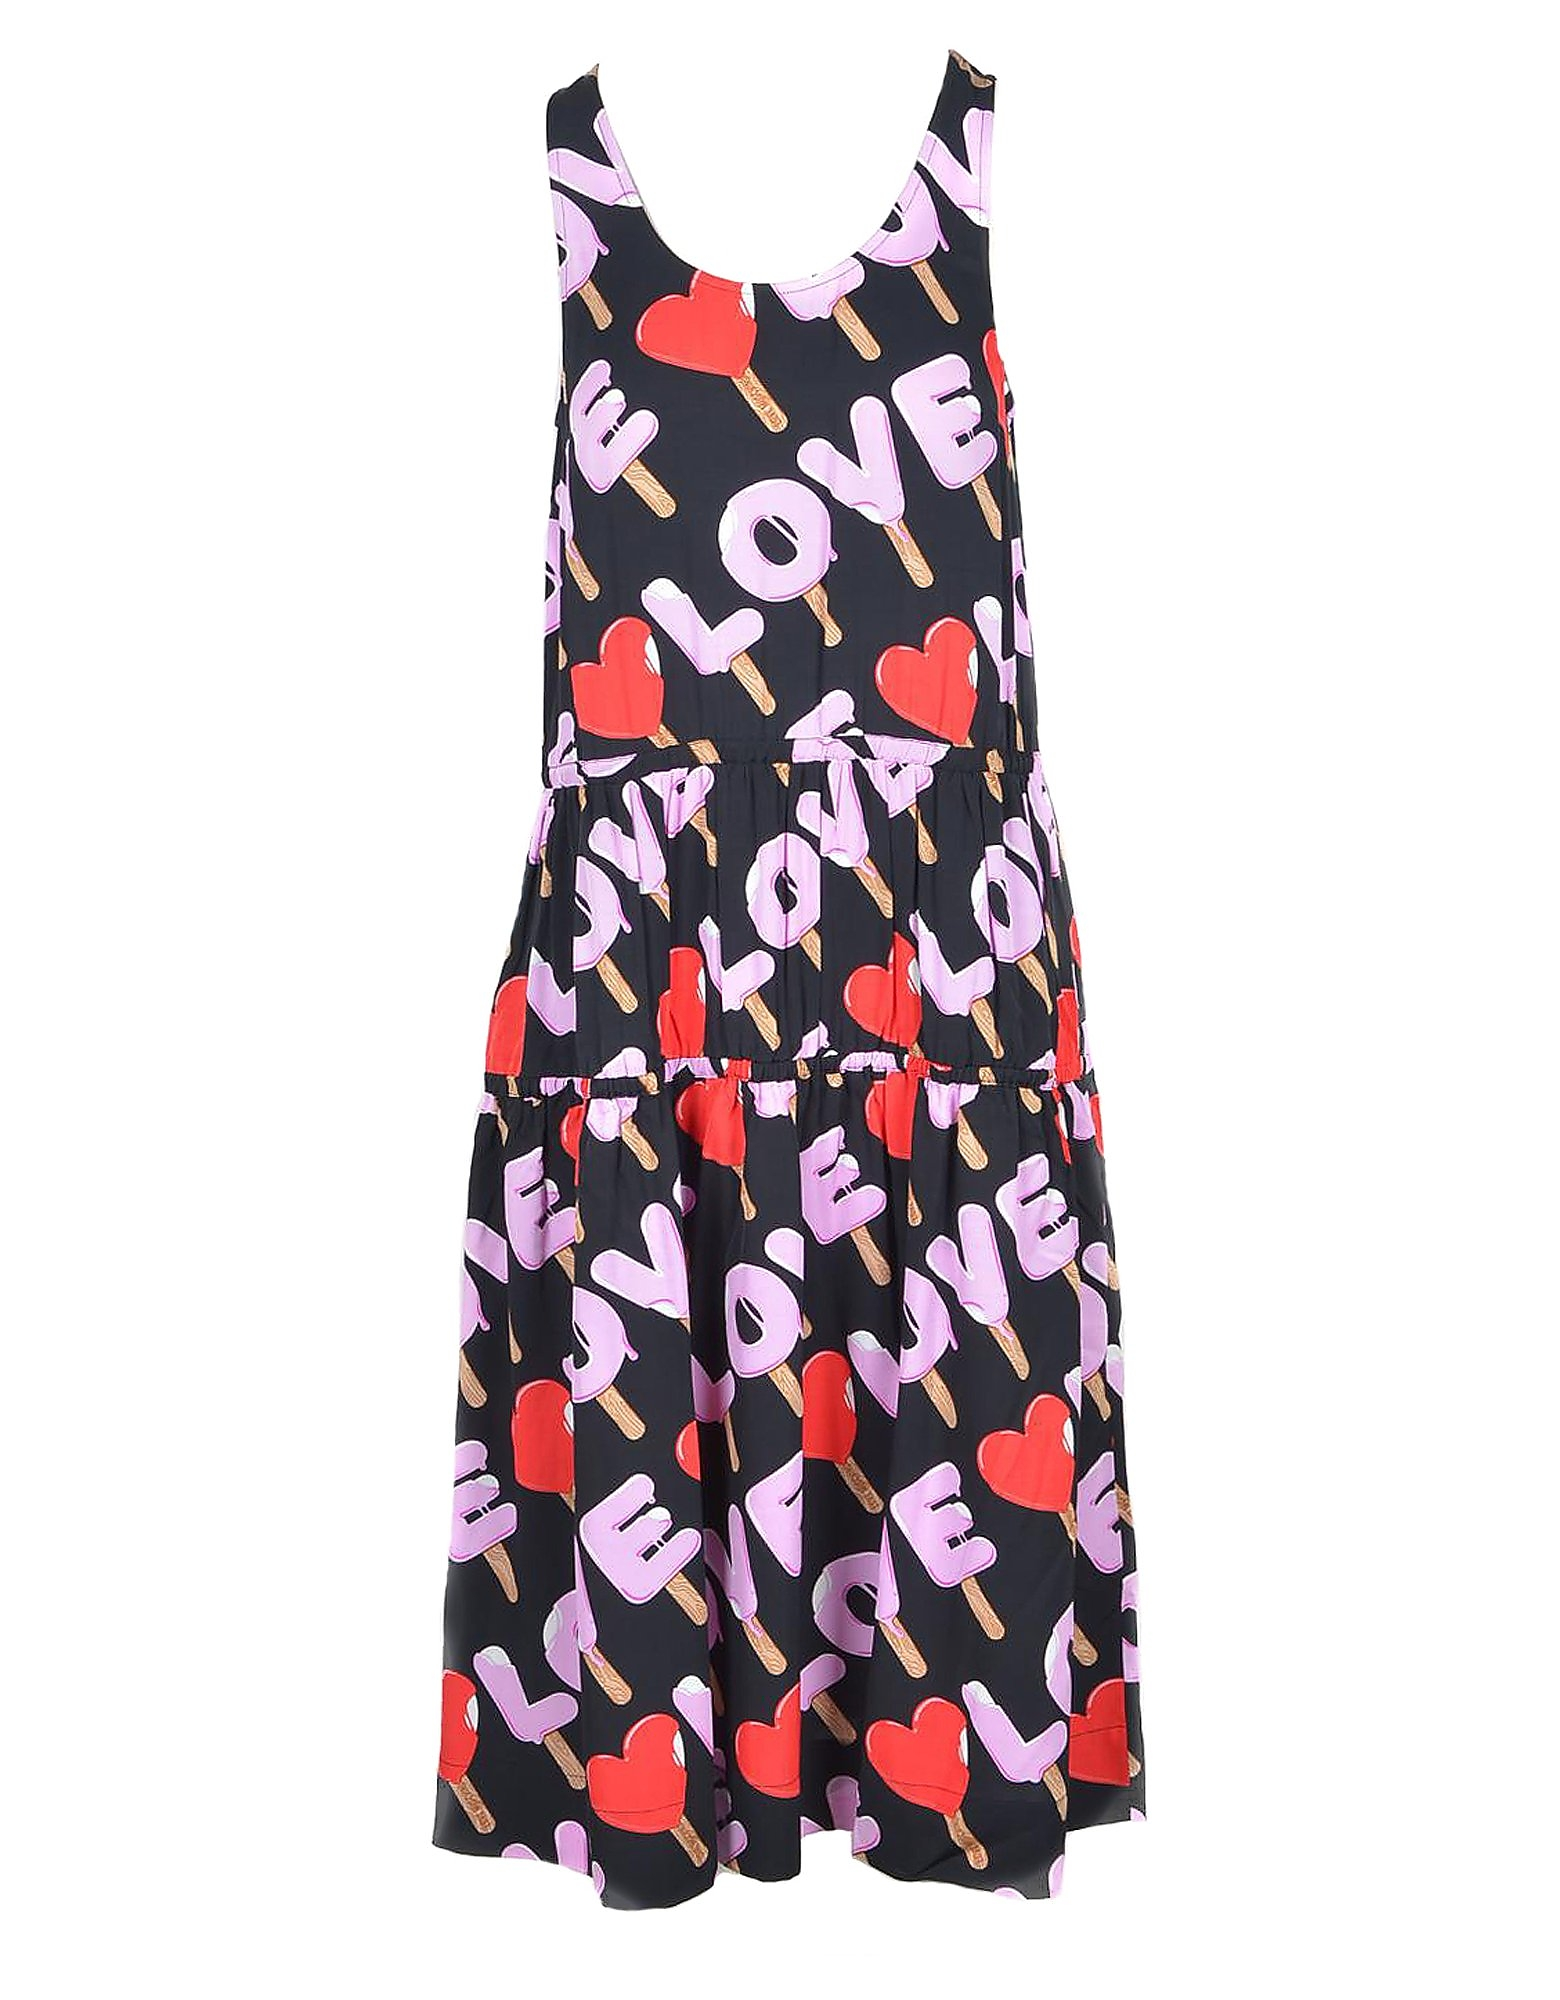 Love Moschino Designer Dresses & Jumpsuits, Women's Black / Pink Dress